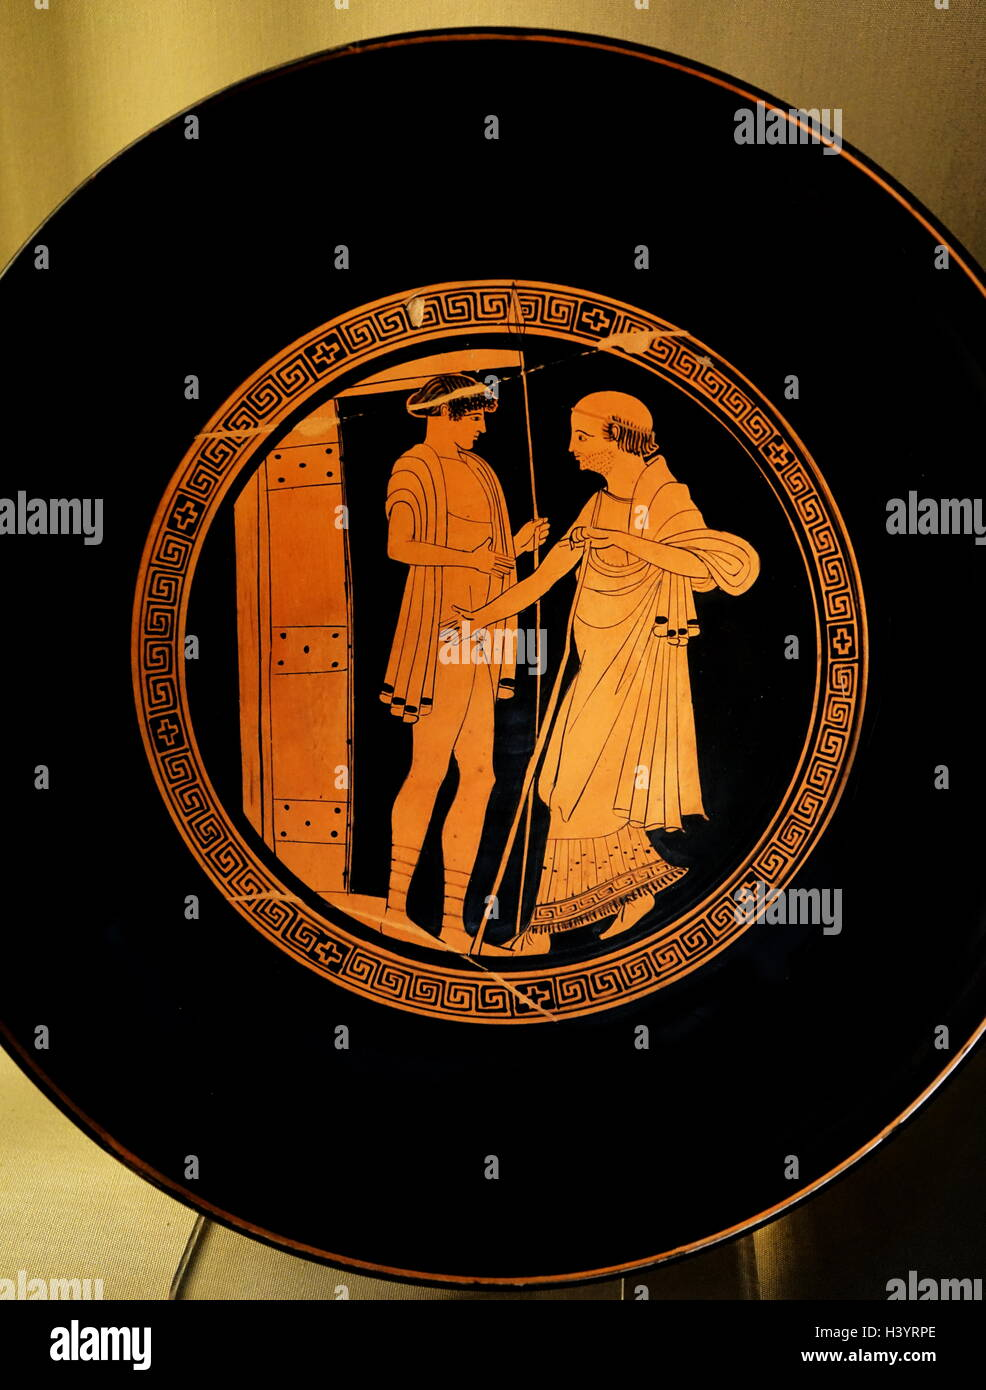 Red figure painting stock photos red figure painting stock plate decorated with red figure vase painting an important style of greek vase painting floridaeventfo Image collections